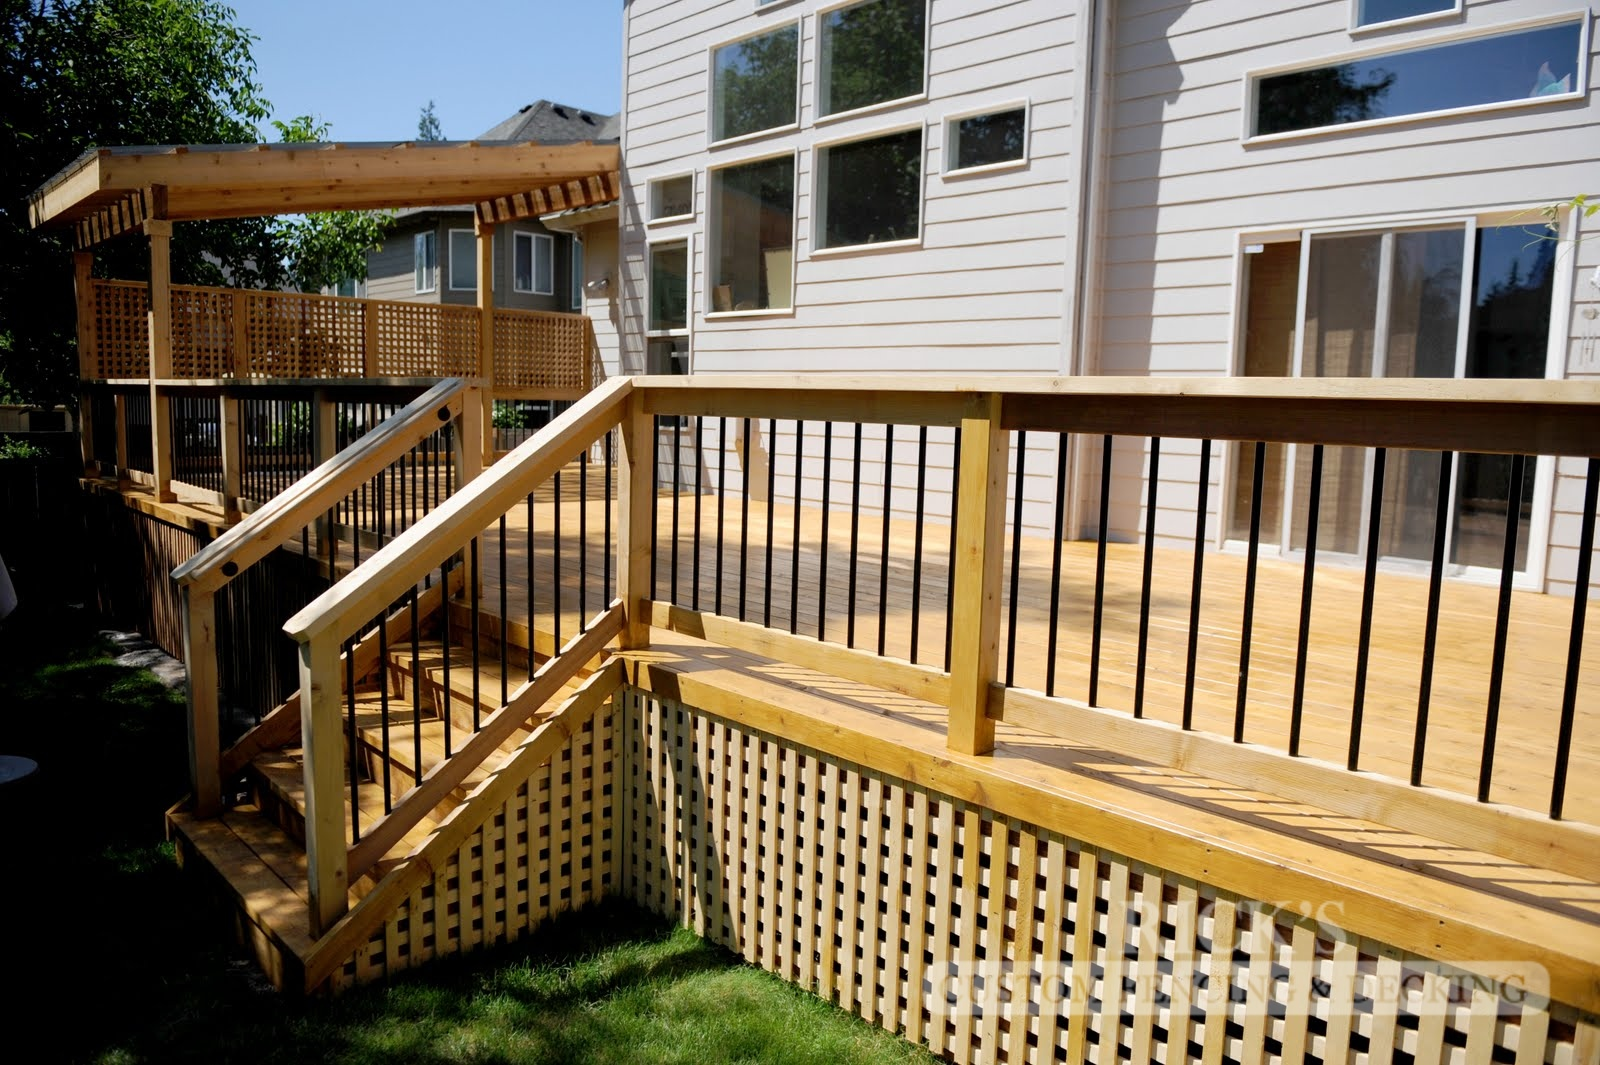 1046 - Port Orford Cedar Decking with Handrail